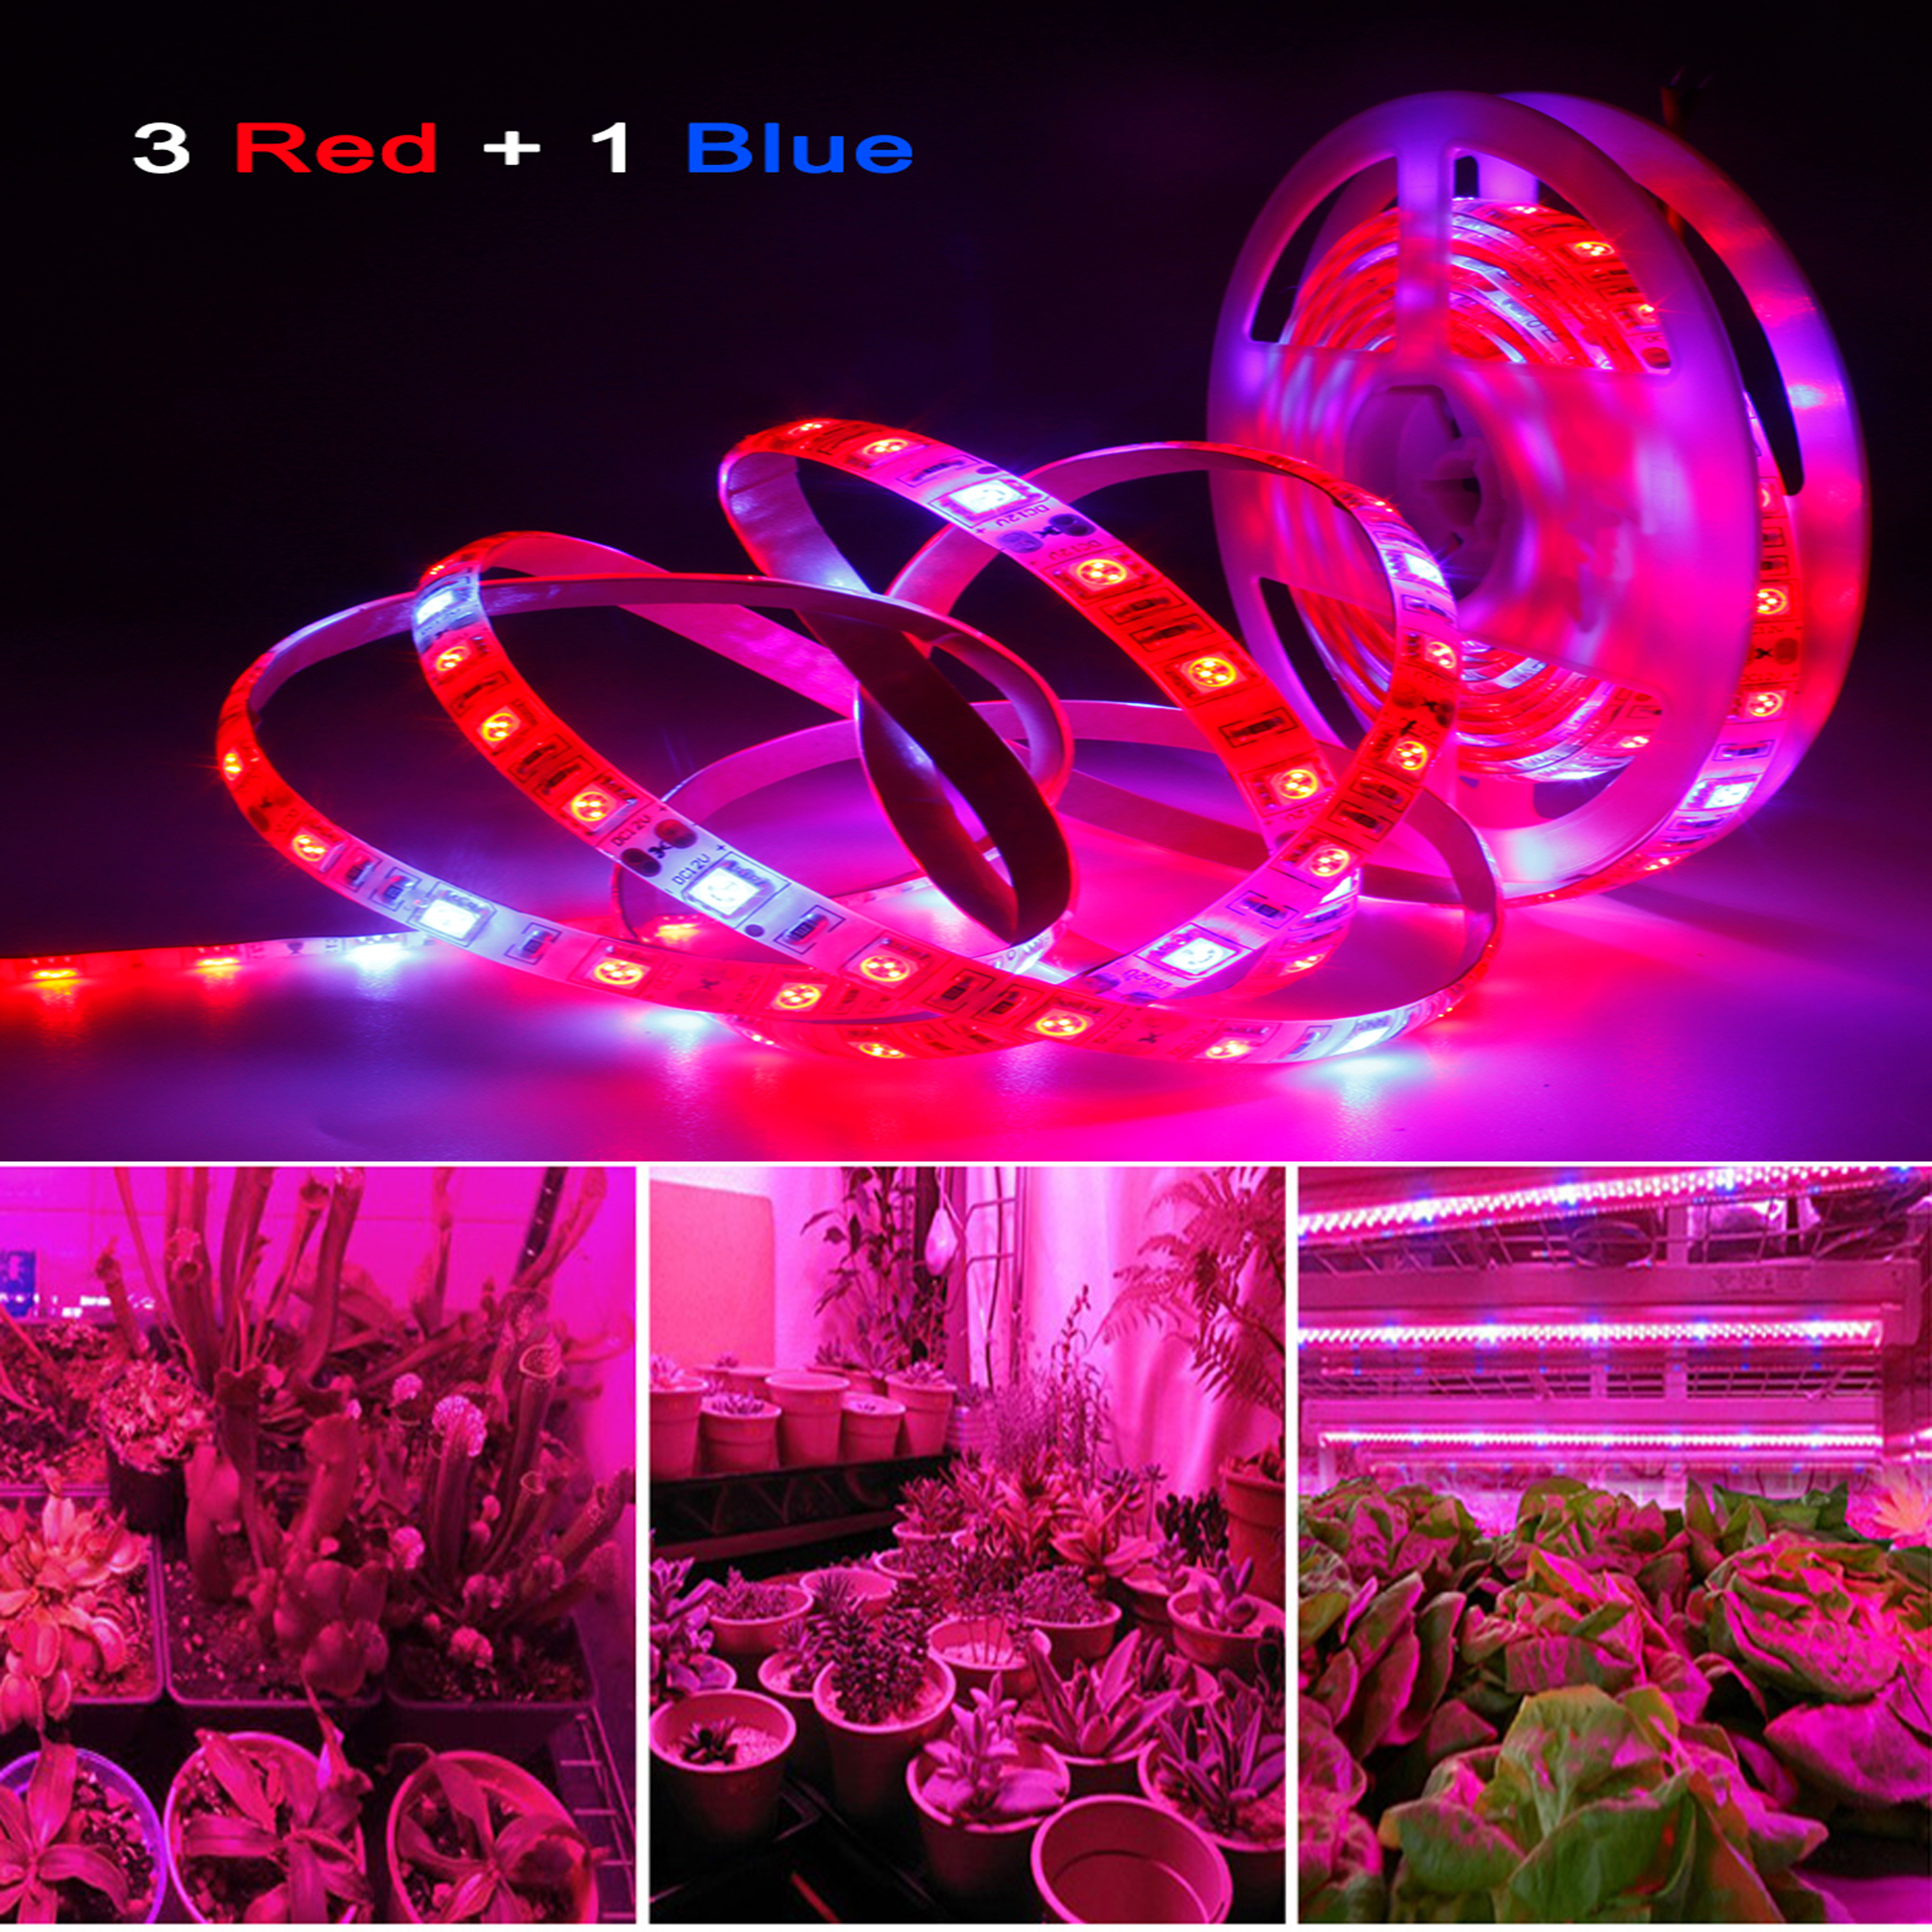 DC 12V LED Grow Light Full Spectrum LED Strip Lights 1m 2m 3m 4m 5m SMD5050 LED Phyto Lamps For Greenhouse Hydroponic Plant